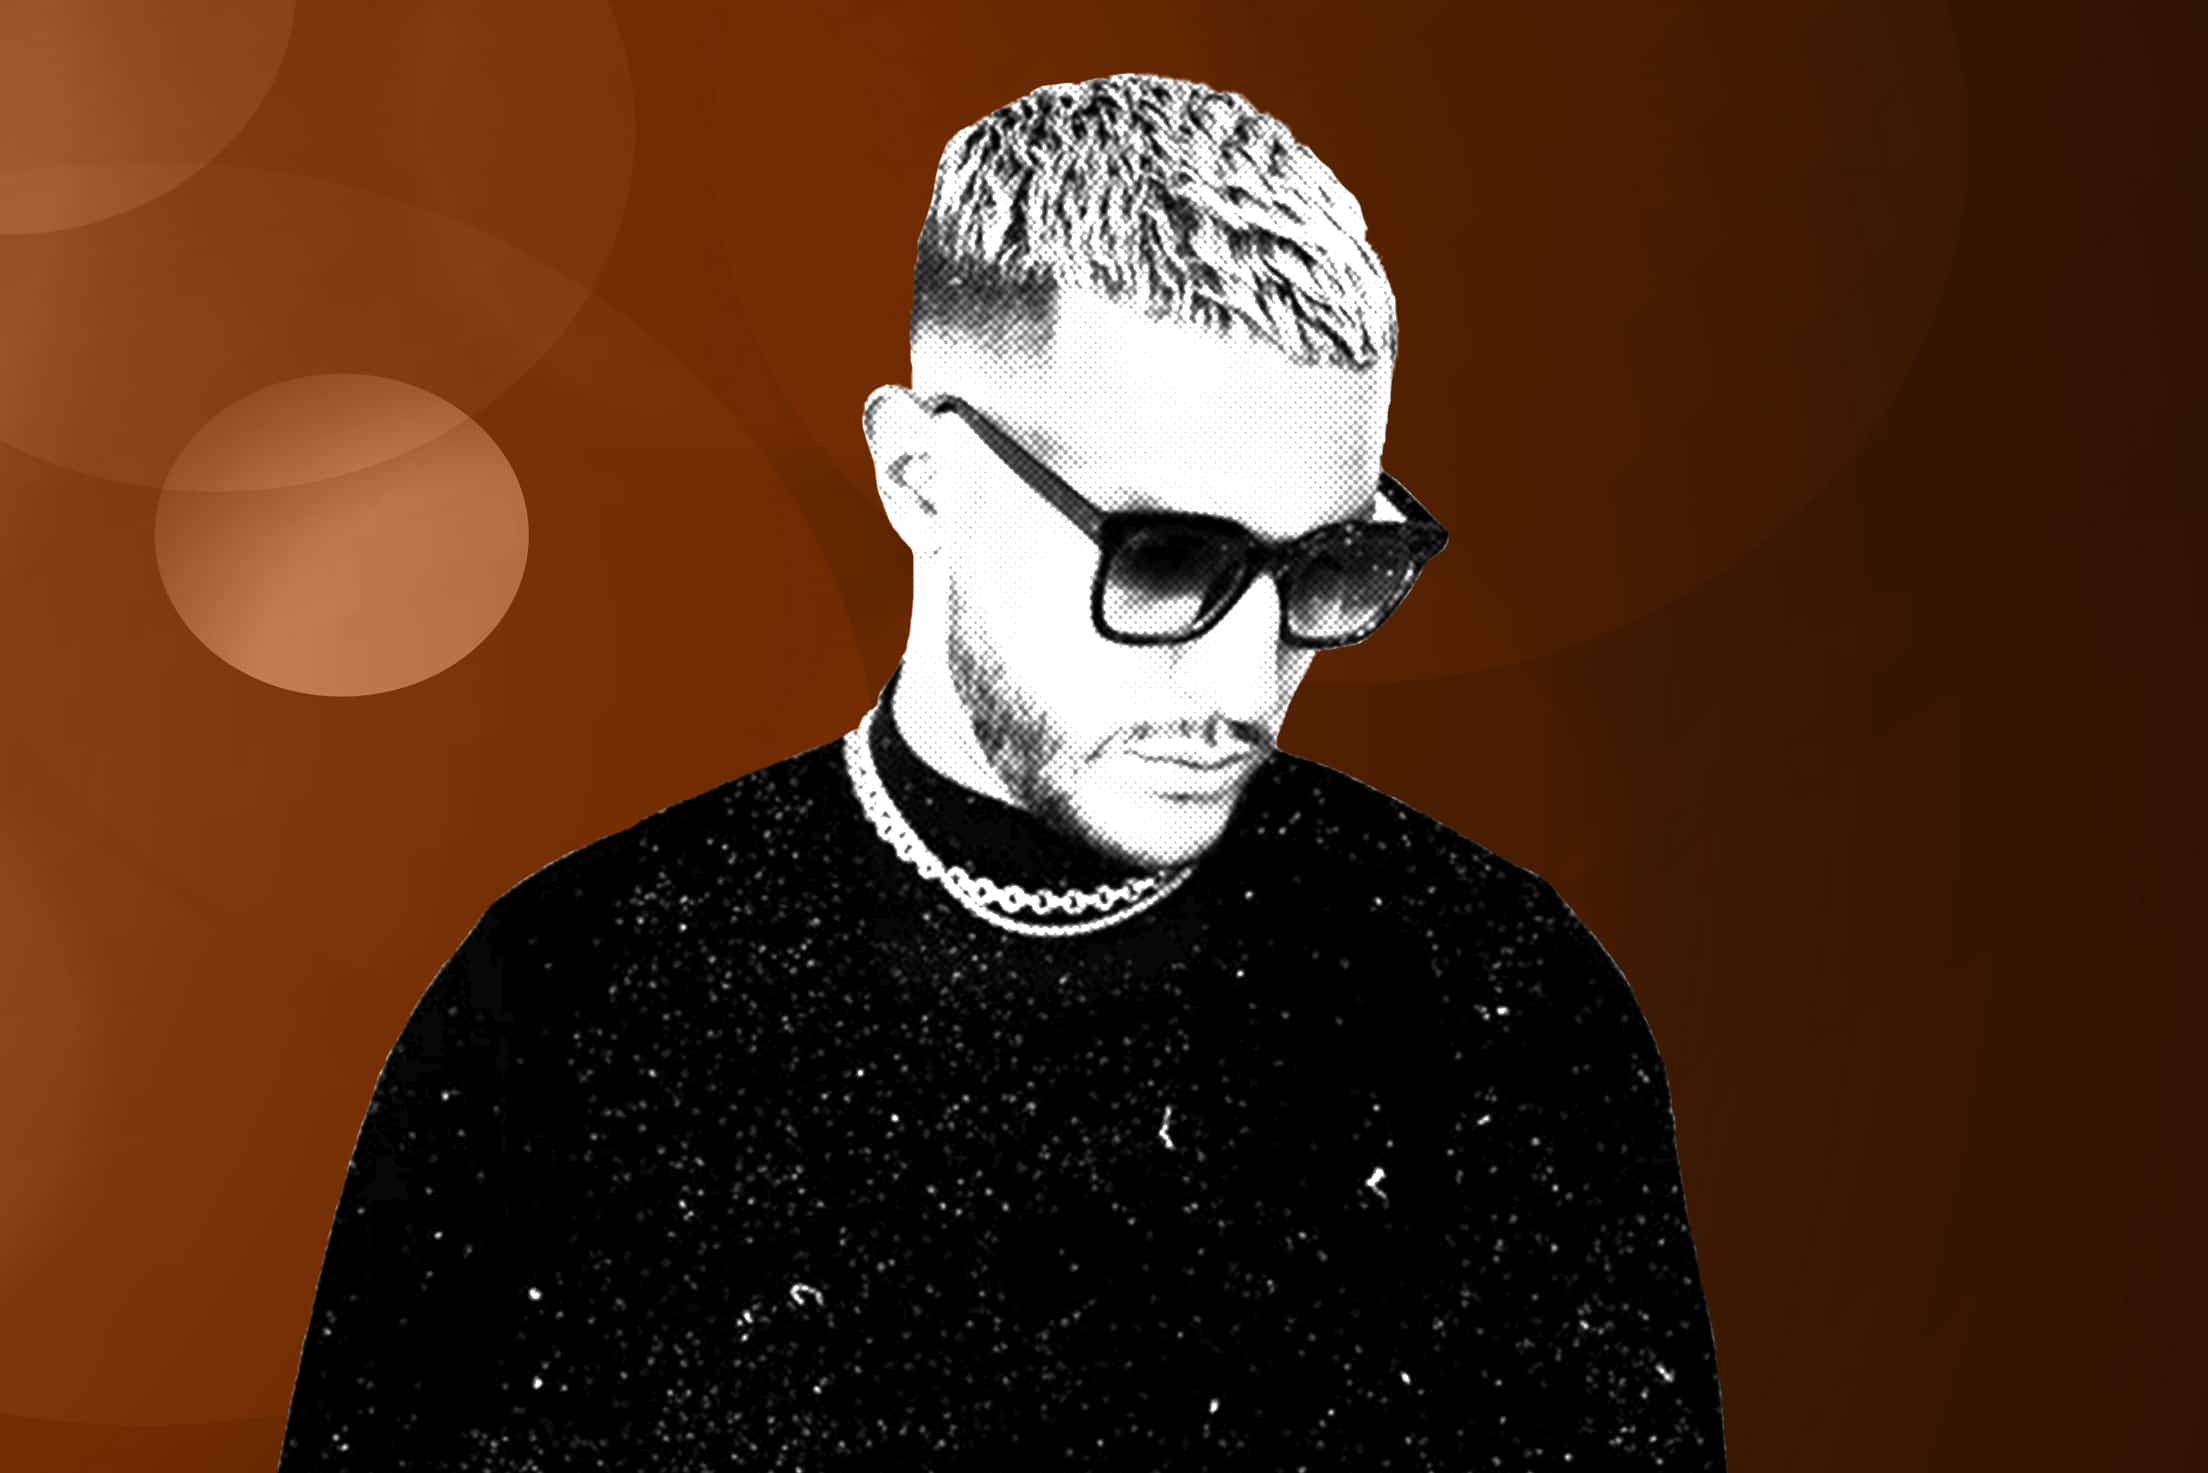 DJ SNAKE'S NEW SINGLE 'TRUST NOBODY' IS PRETTY MAJOR